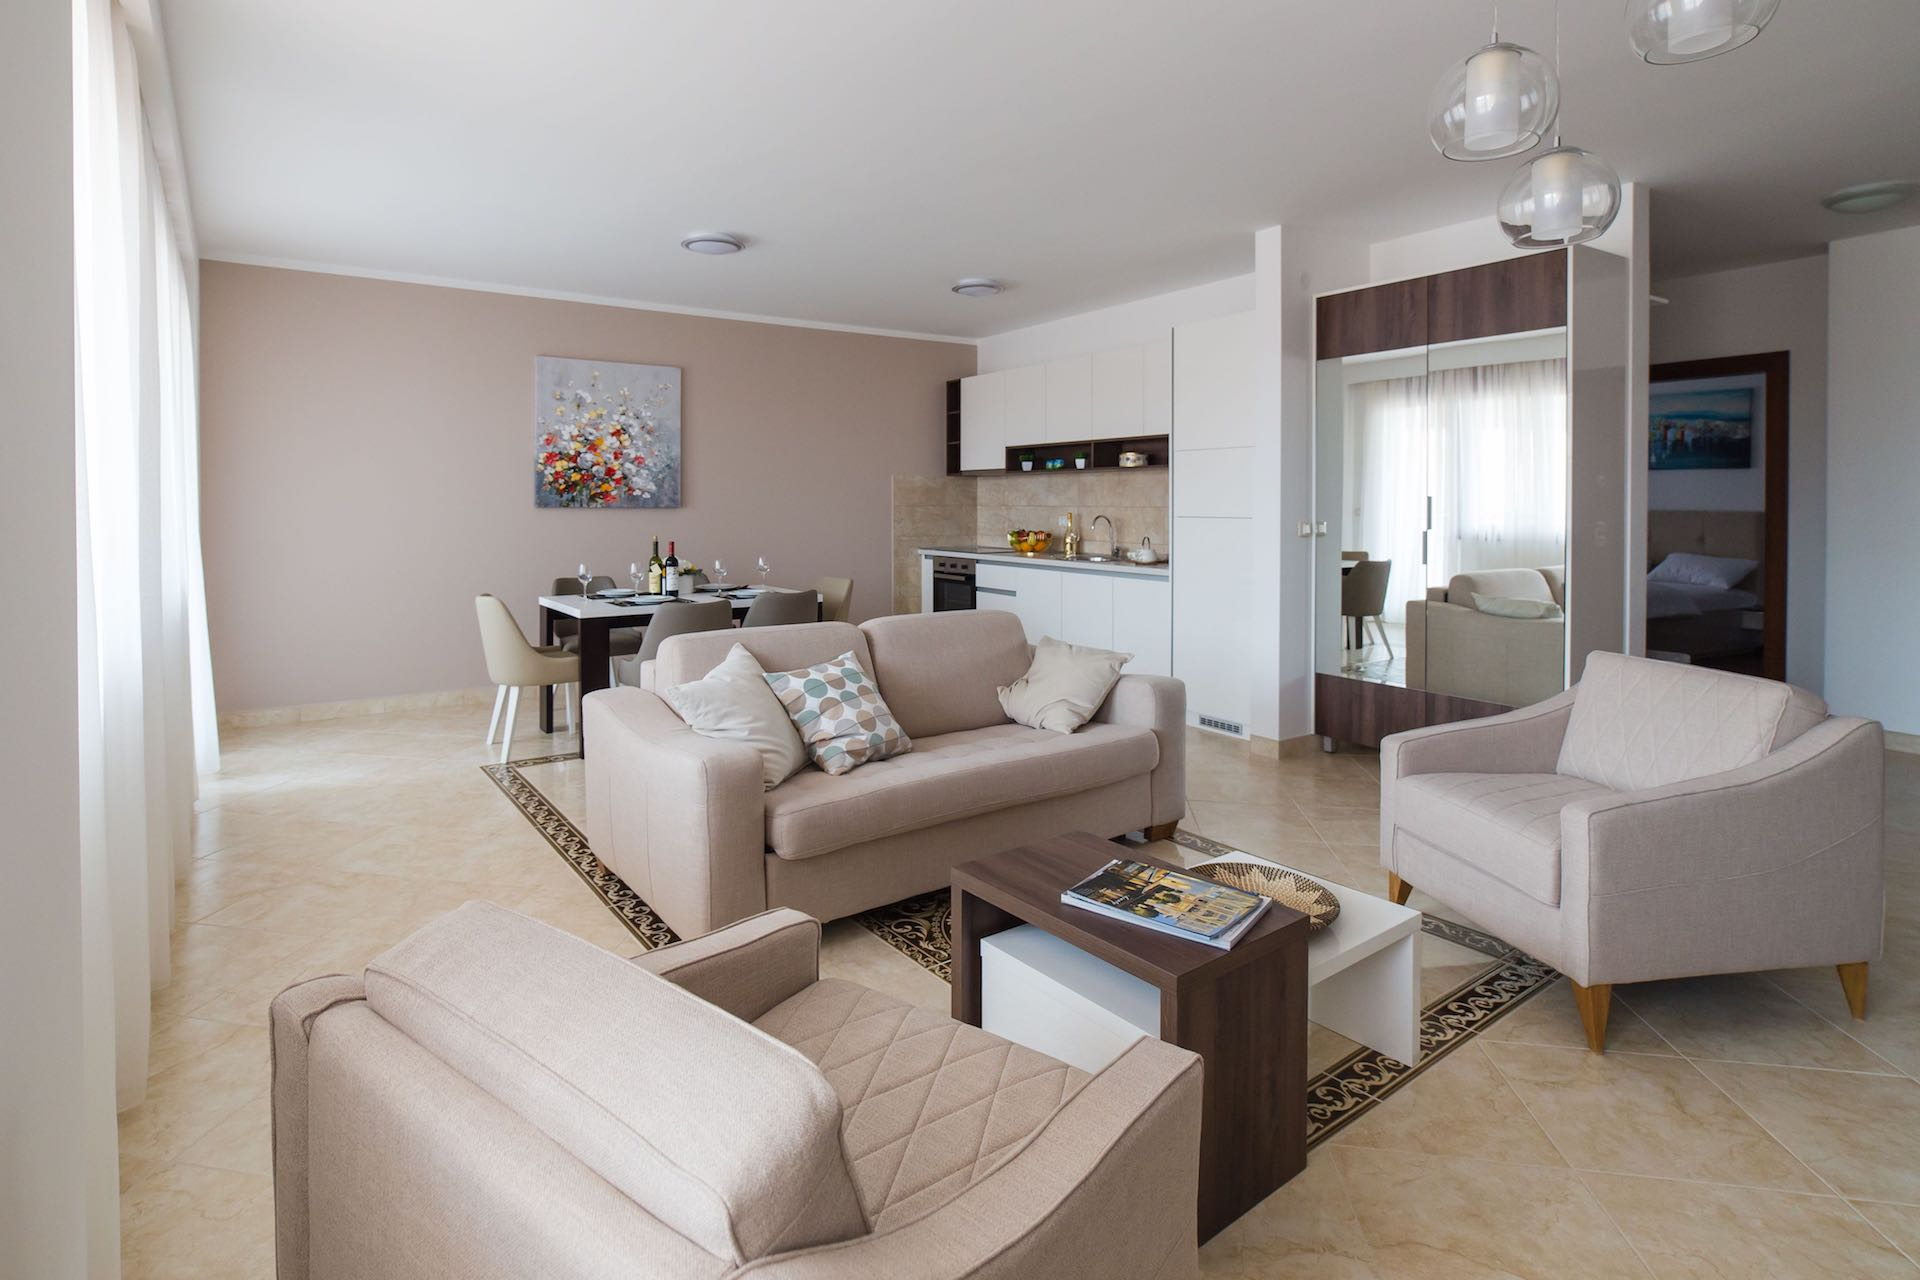 PACKAGE 3 - THREE   BEDROOM APARTMENTS  Features: Garden View, Air Conditioning, Modern Suite, Full Size Bed